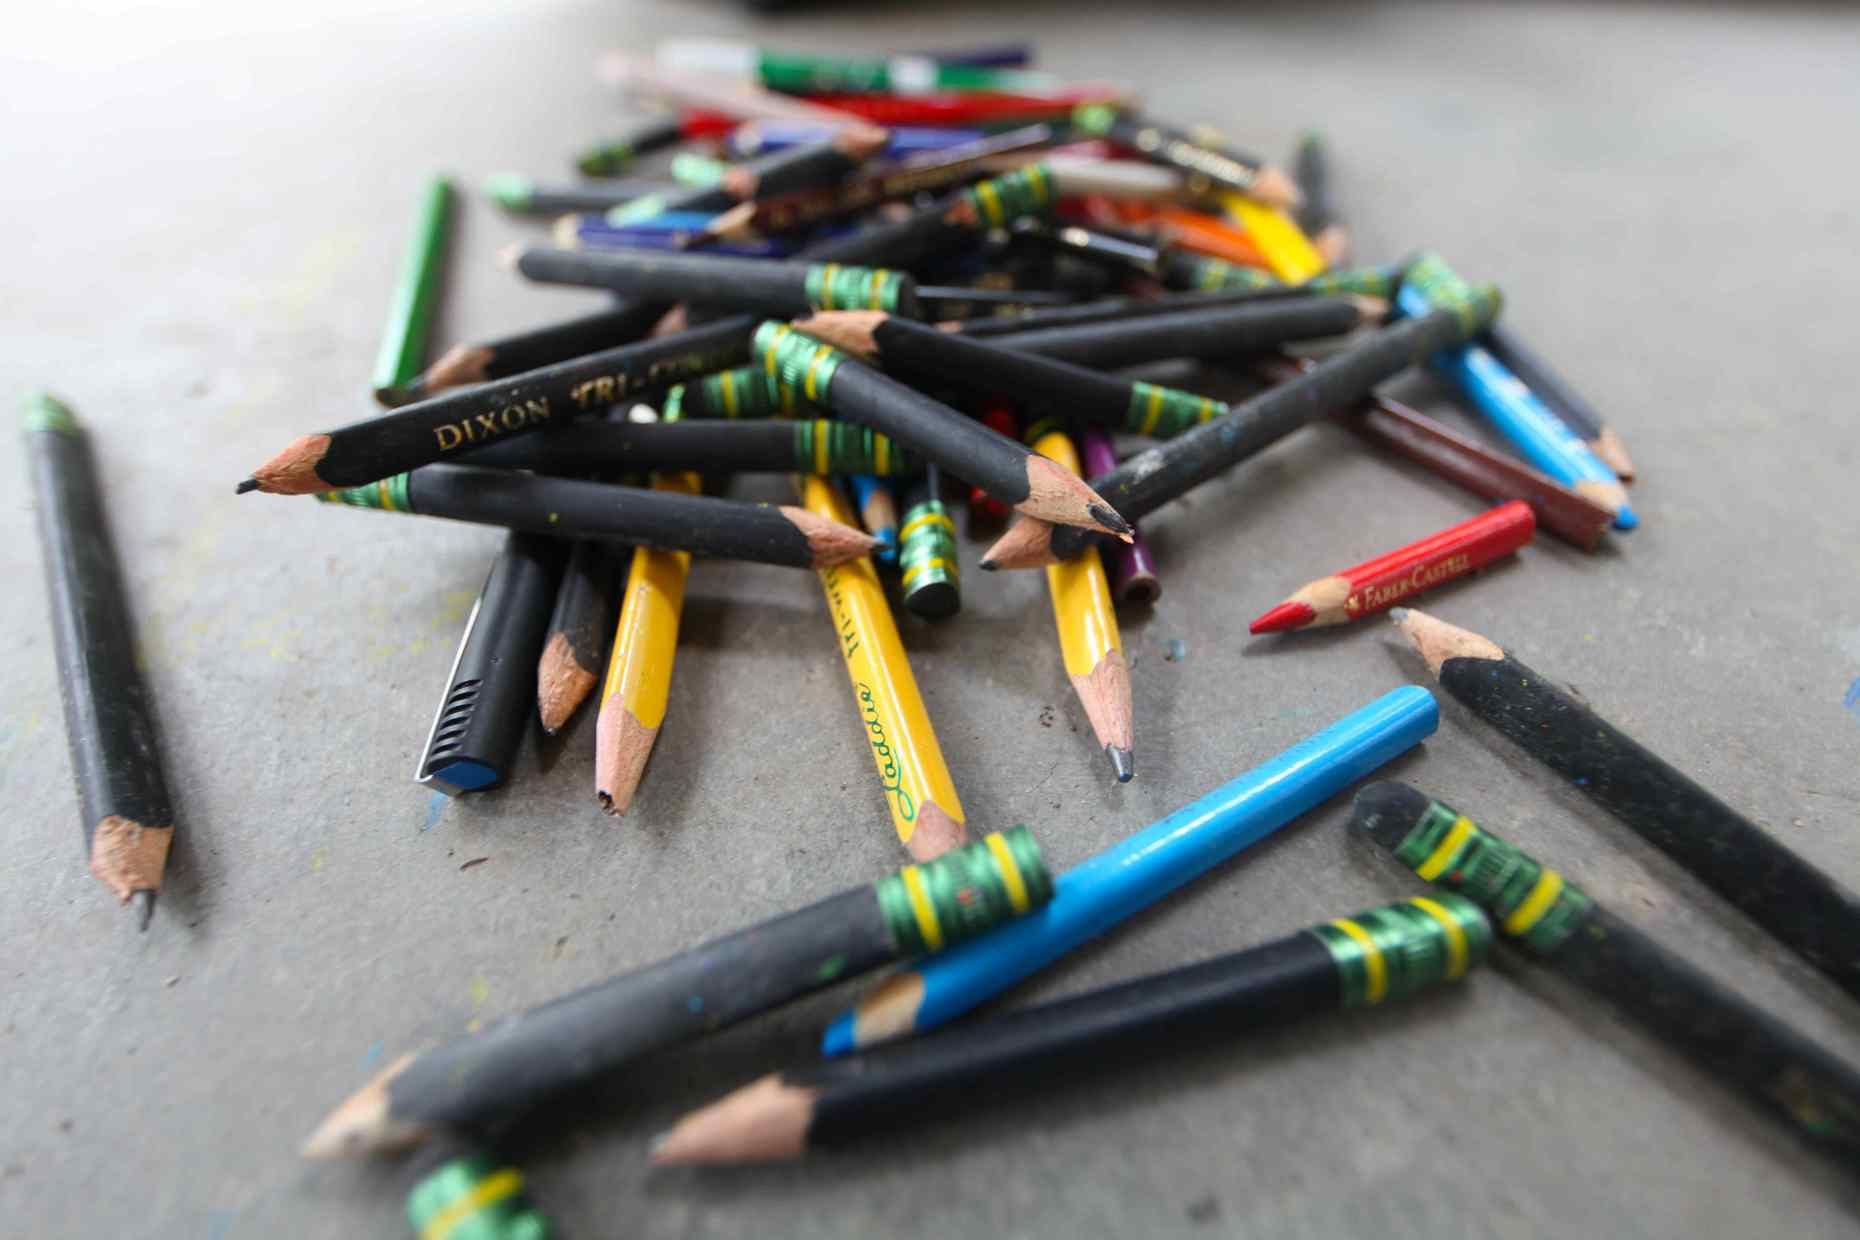 These pencils can be reused. Photo © Liesl Clark